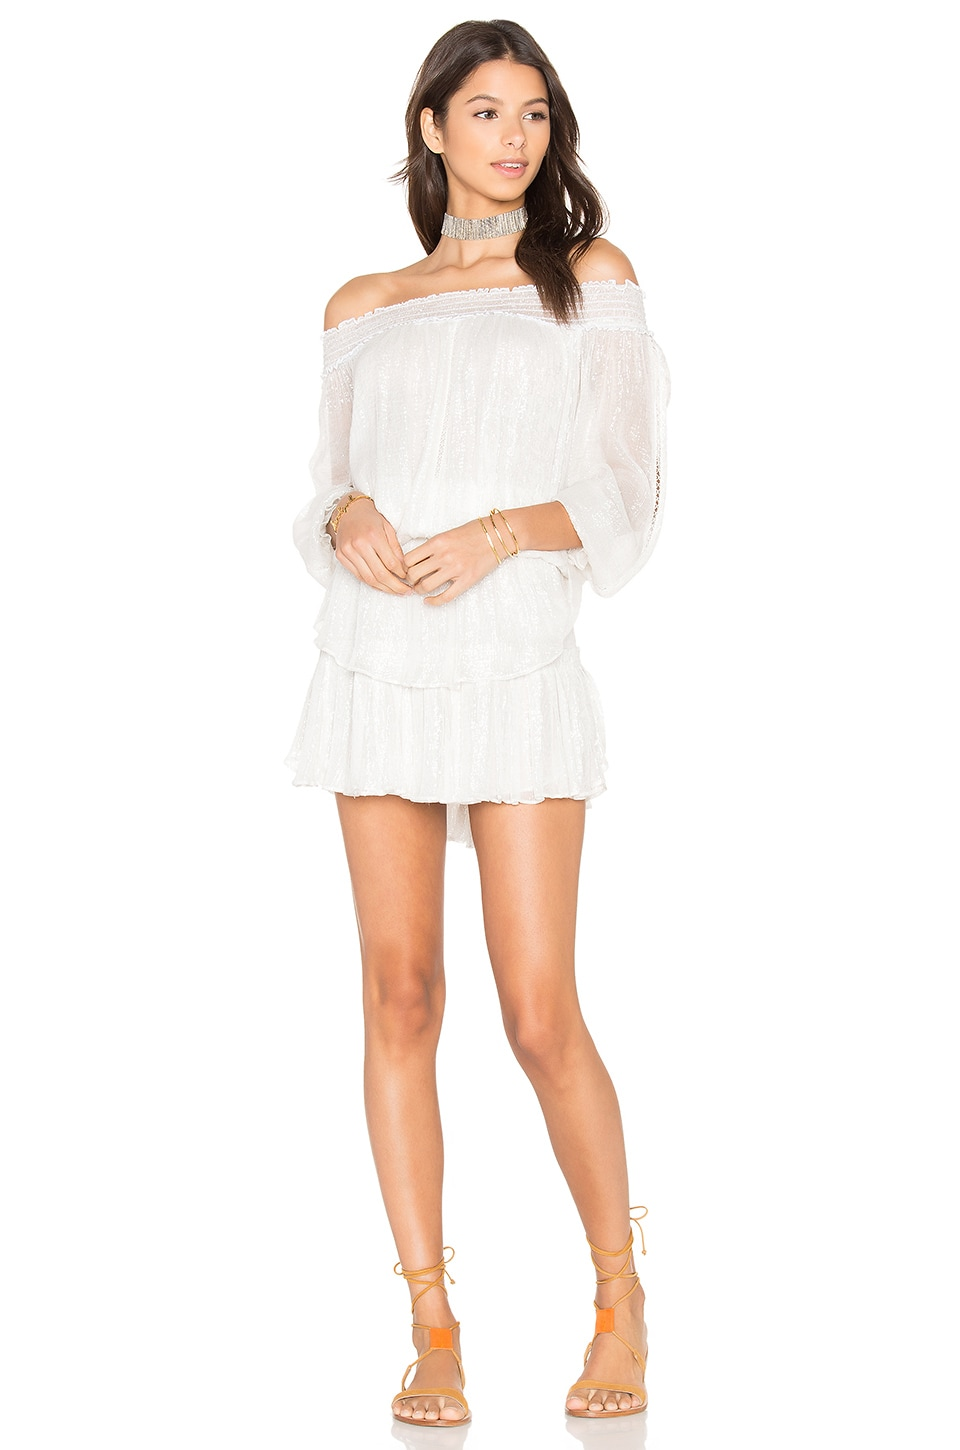 LoveShackFancy Smocked Ruffle Mini Dress in Ivory & Silver